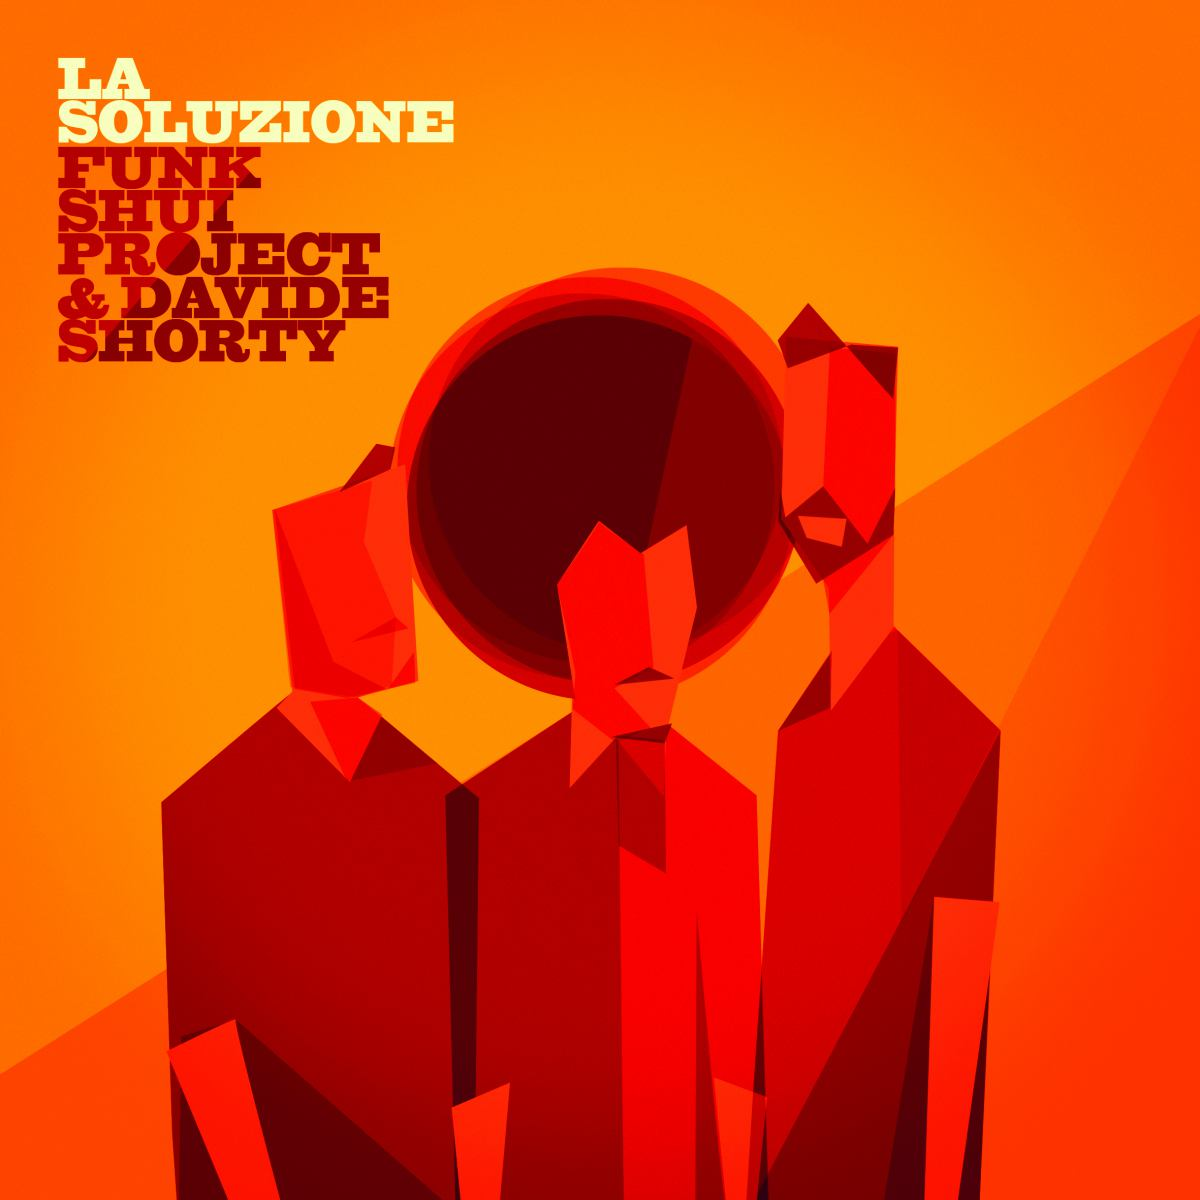 La Soluzione al mainstream di Shorty & Funk Shui Project